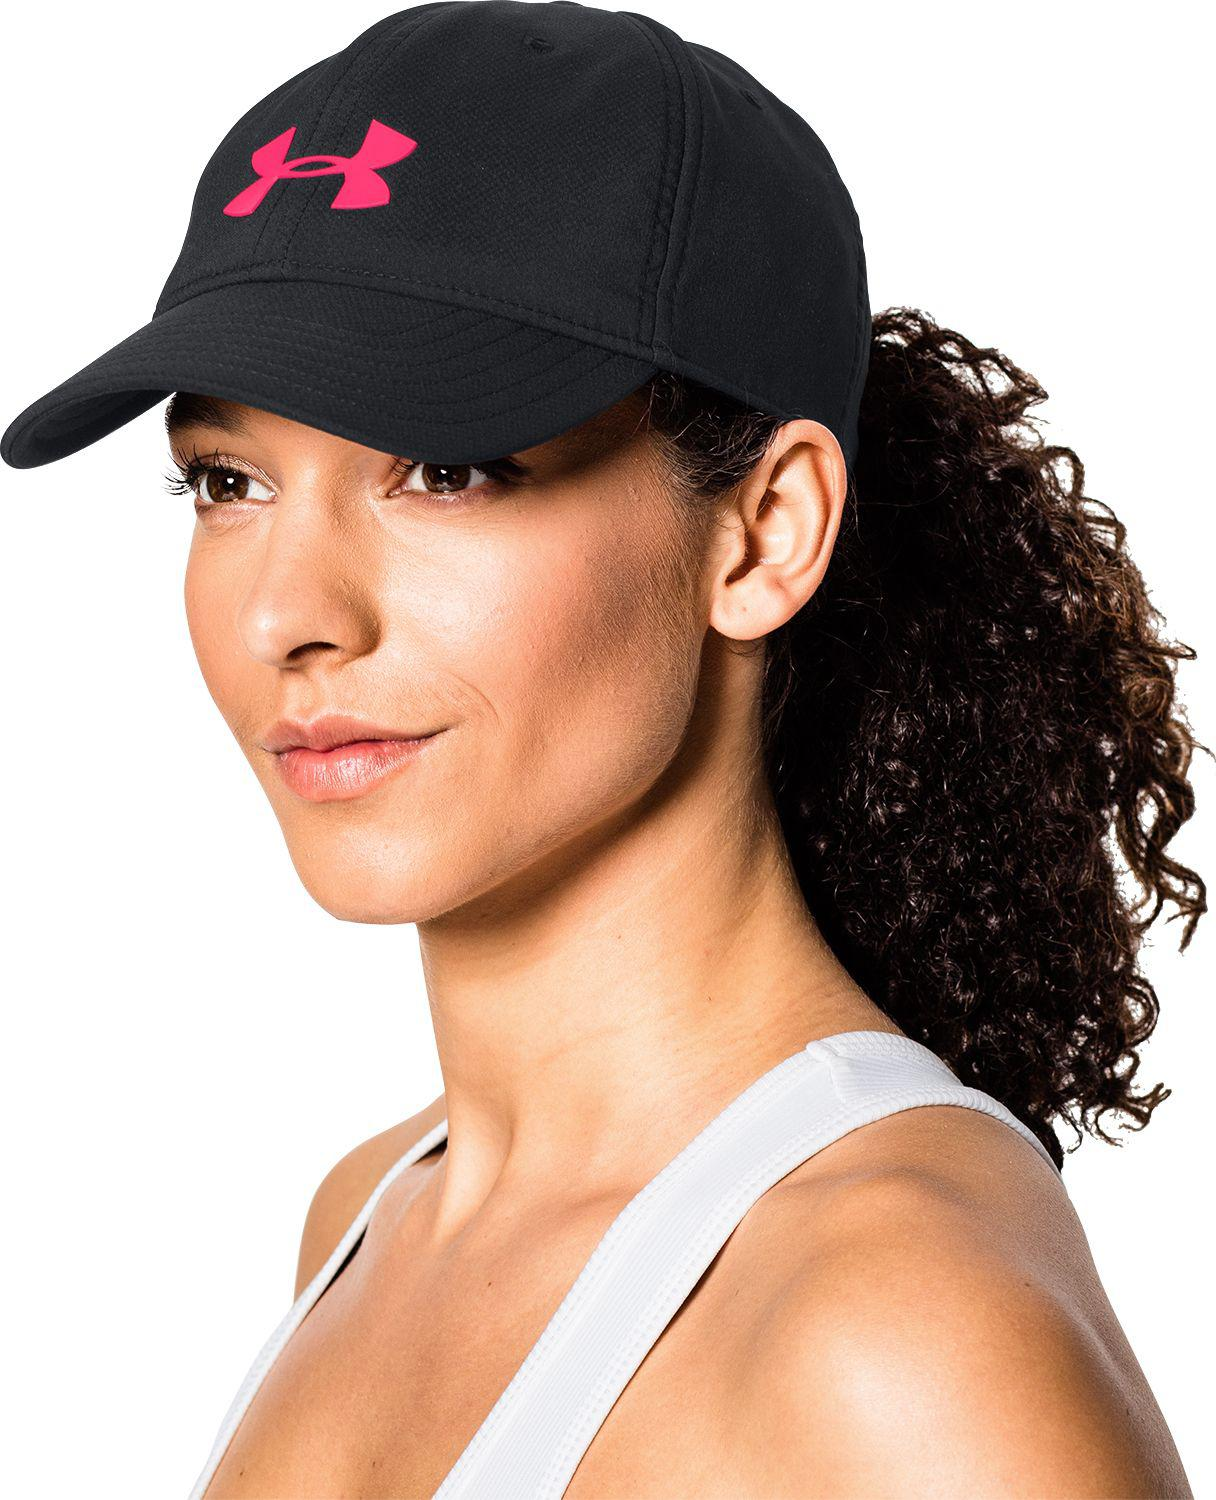 0a5666872dc76 Lyst - Under Armour Renegade Hat in Black